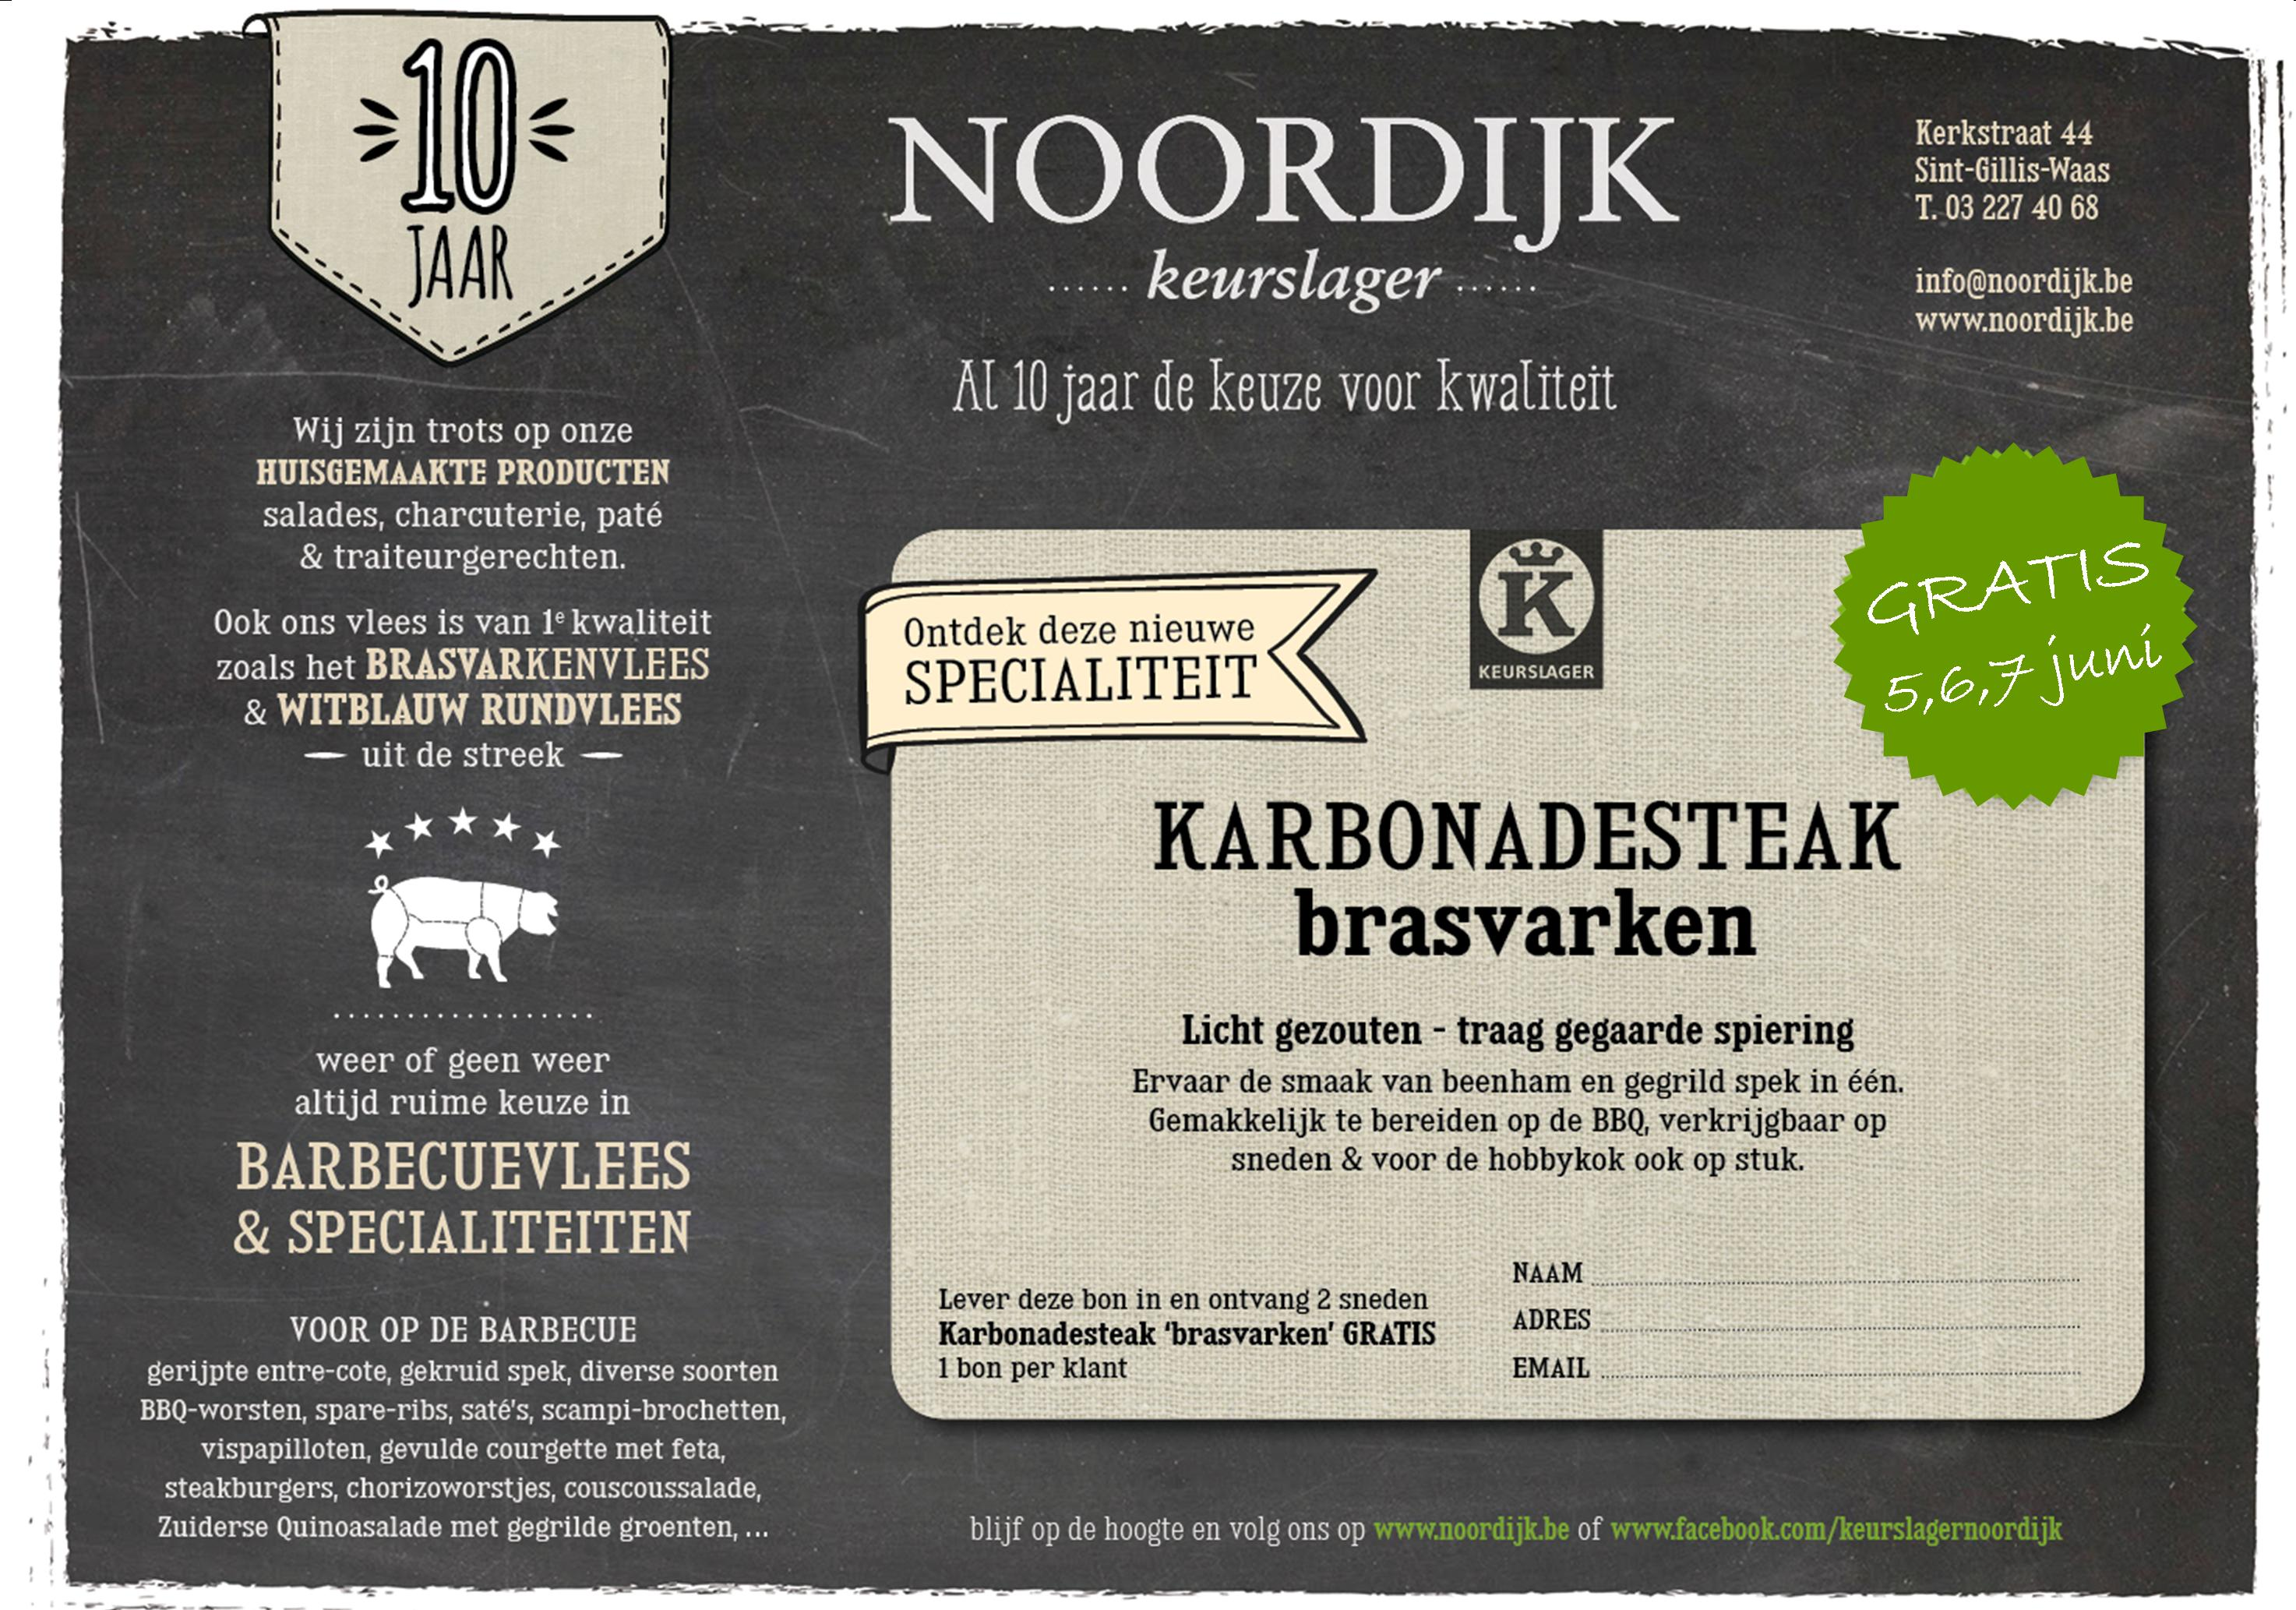 Bon brasvarken karbonadesteak